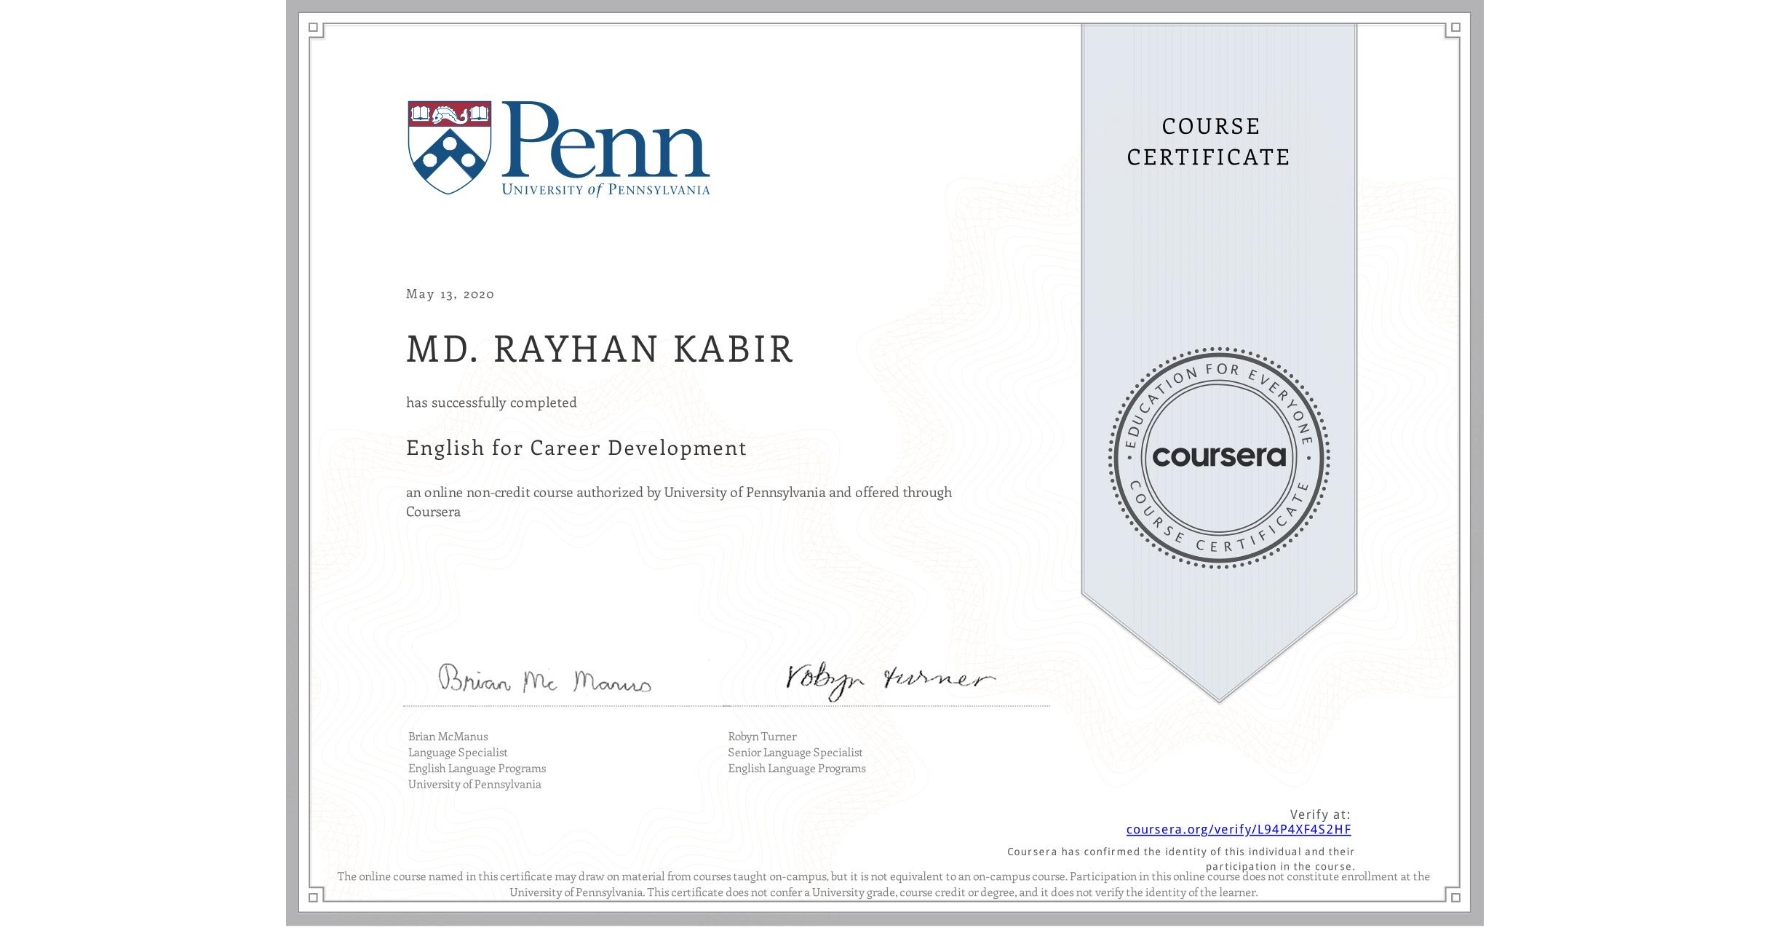 View certificate for MD. RAYHAN  KABIR, English for Career Development, an online non-credit course authorized by University of Pennsylvania and offered through Coursera